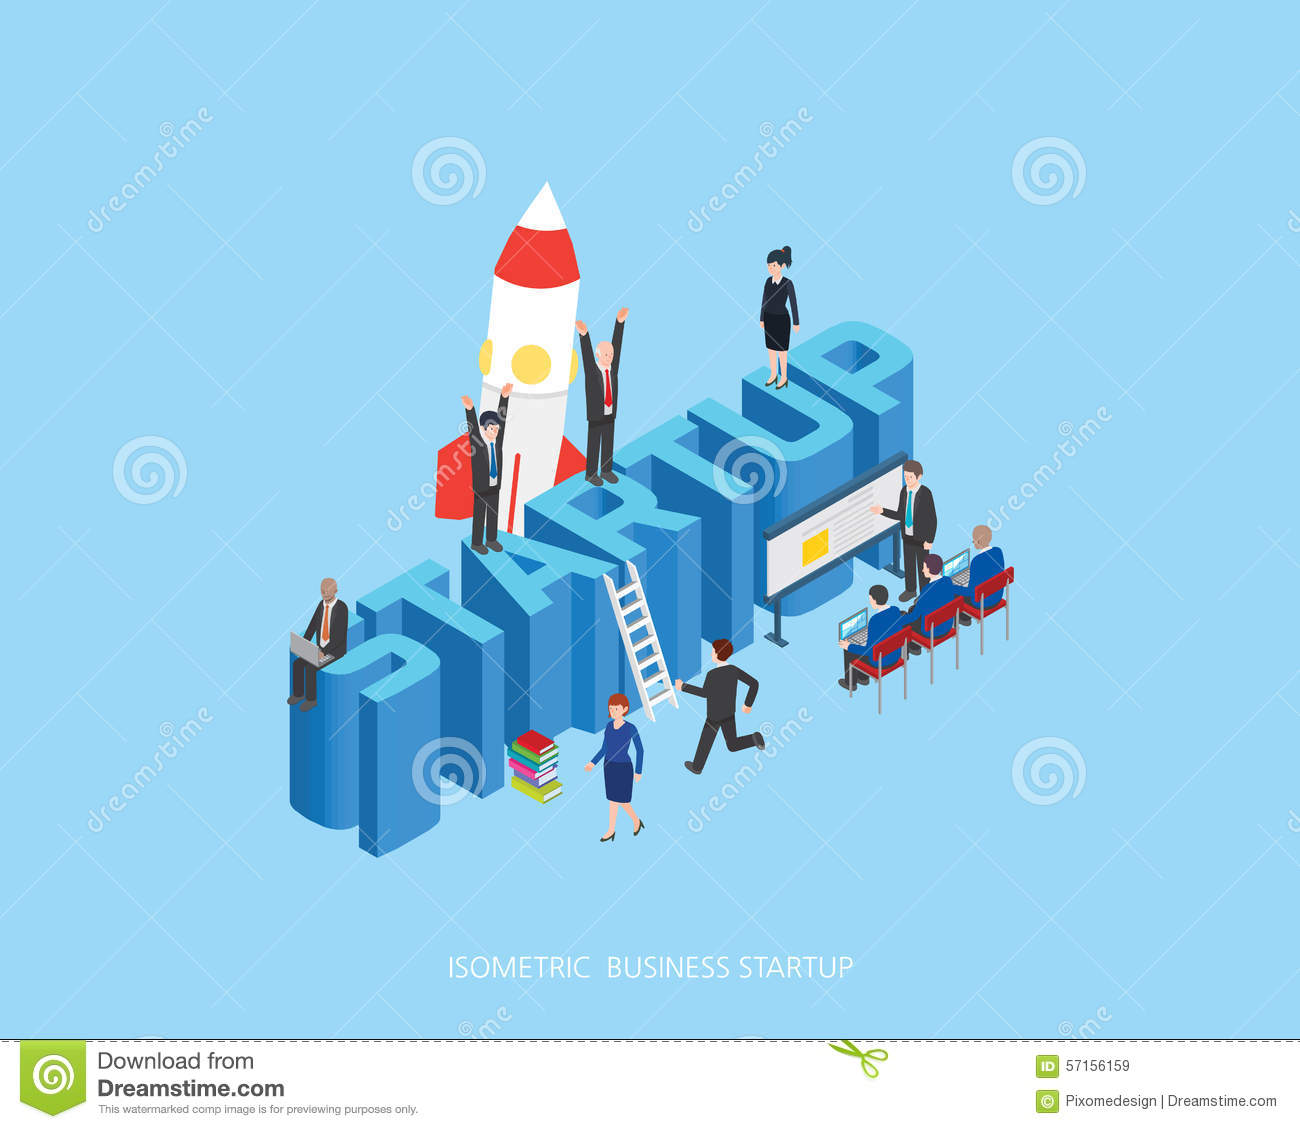 Flat 3d Isometric Illustration Stark Up Concept Design